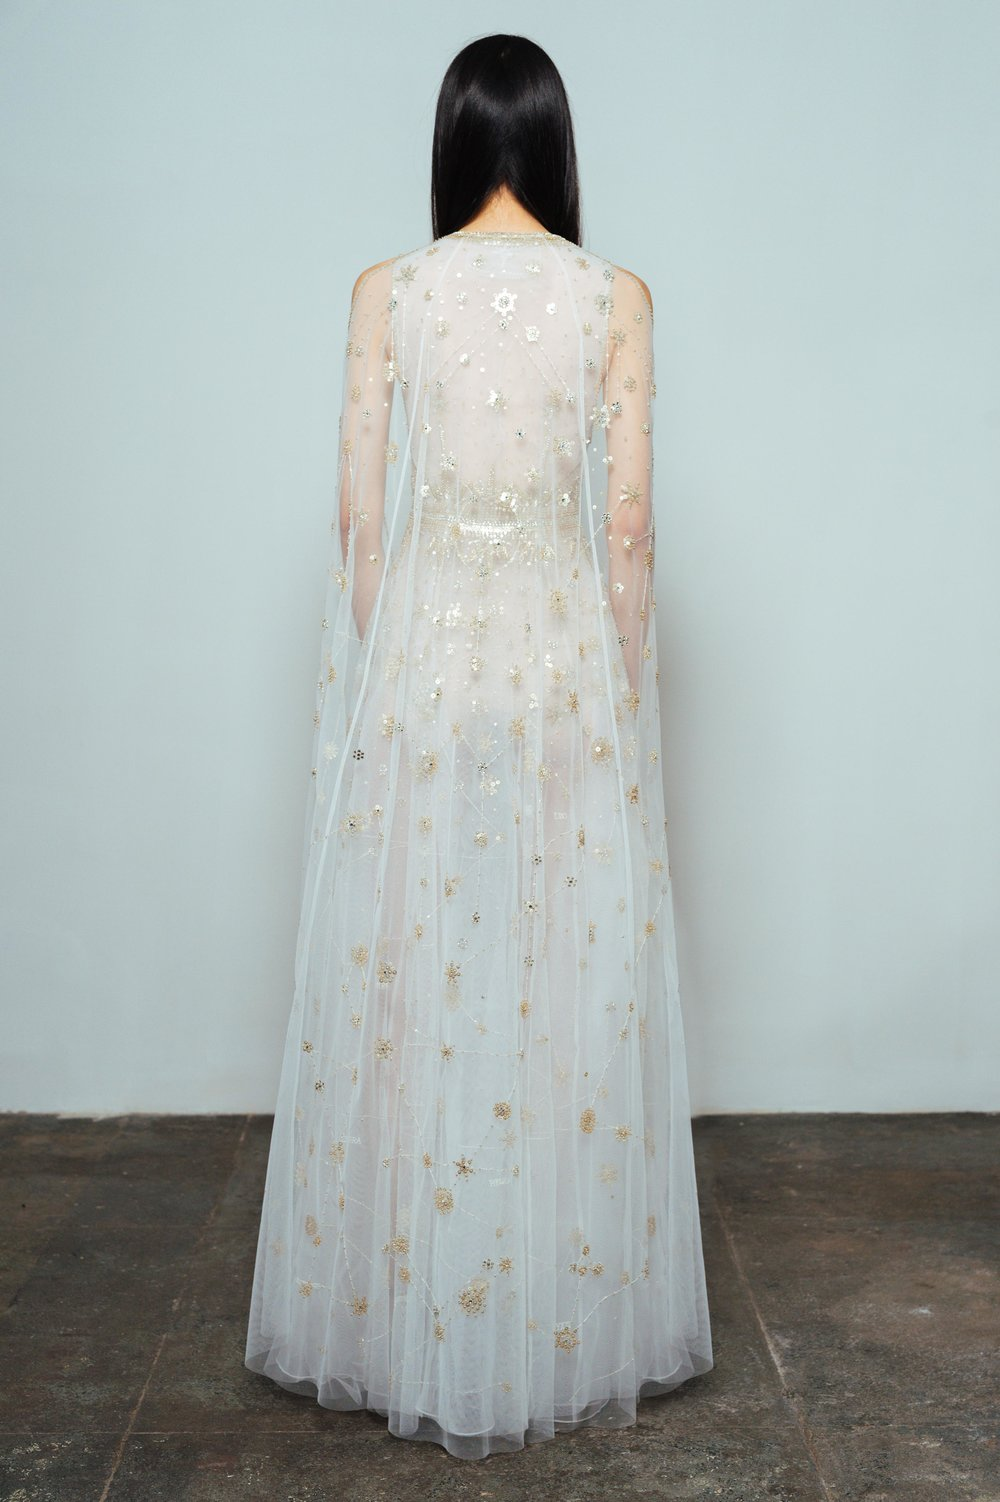 CONSTELLATION DRESS — CUCCULELLI SHAHEEN